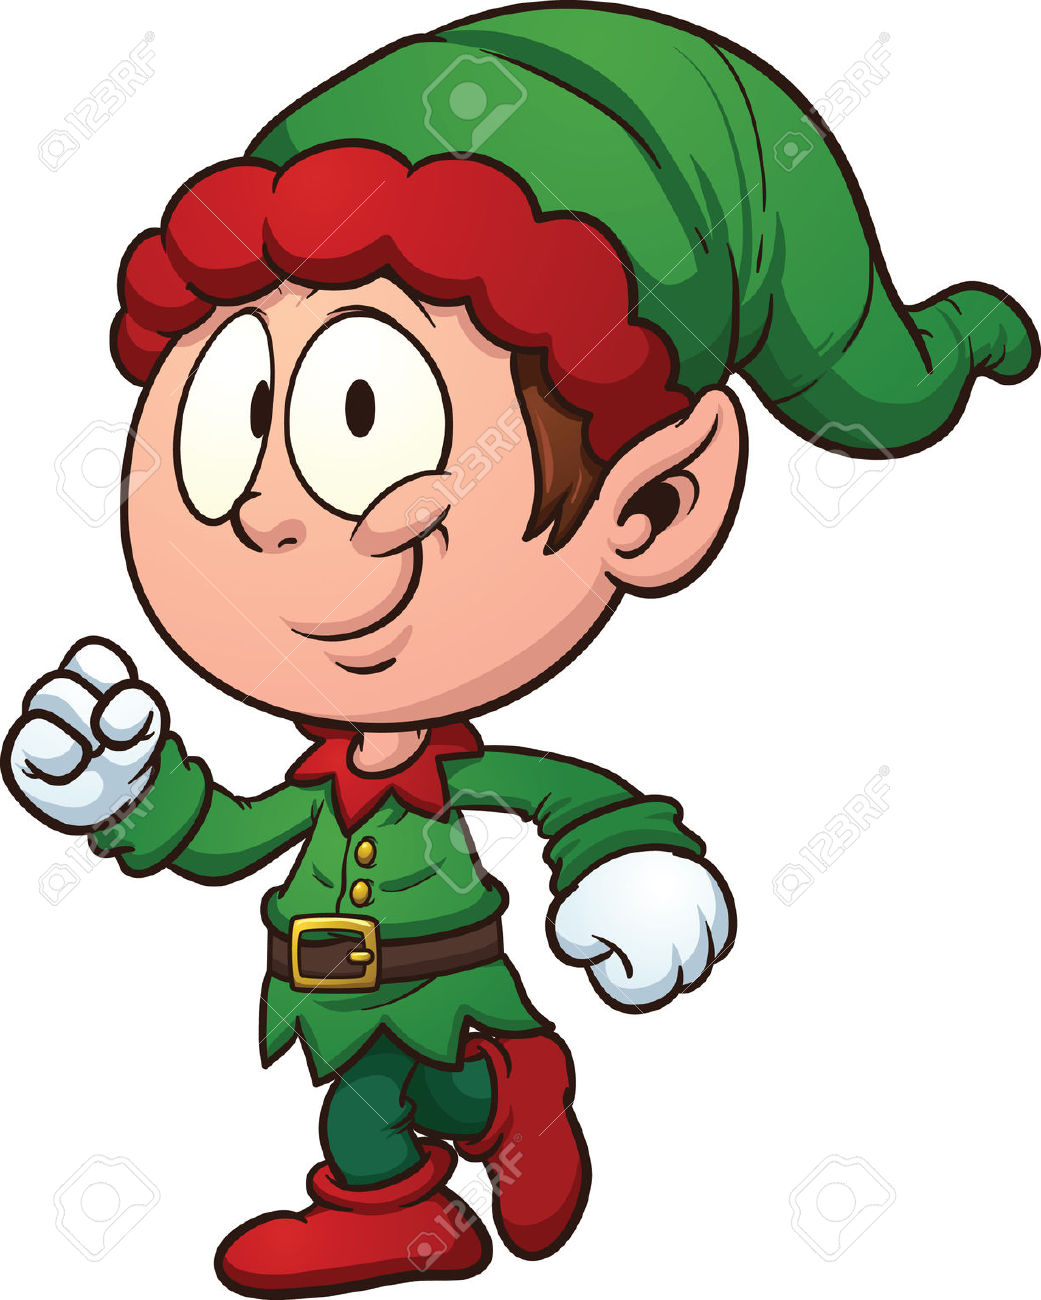 Animated Elf Clipart.